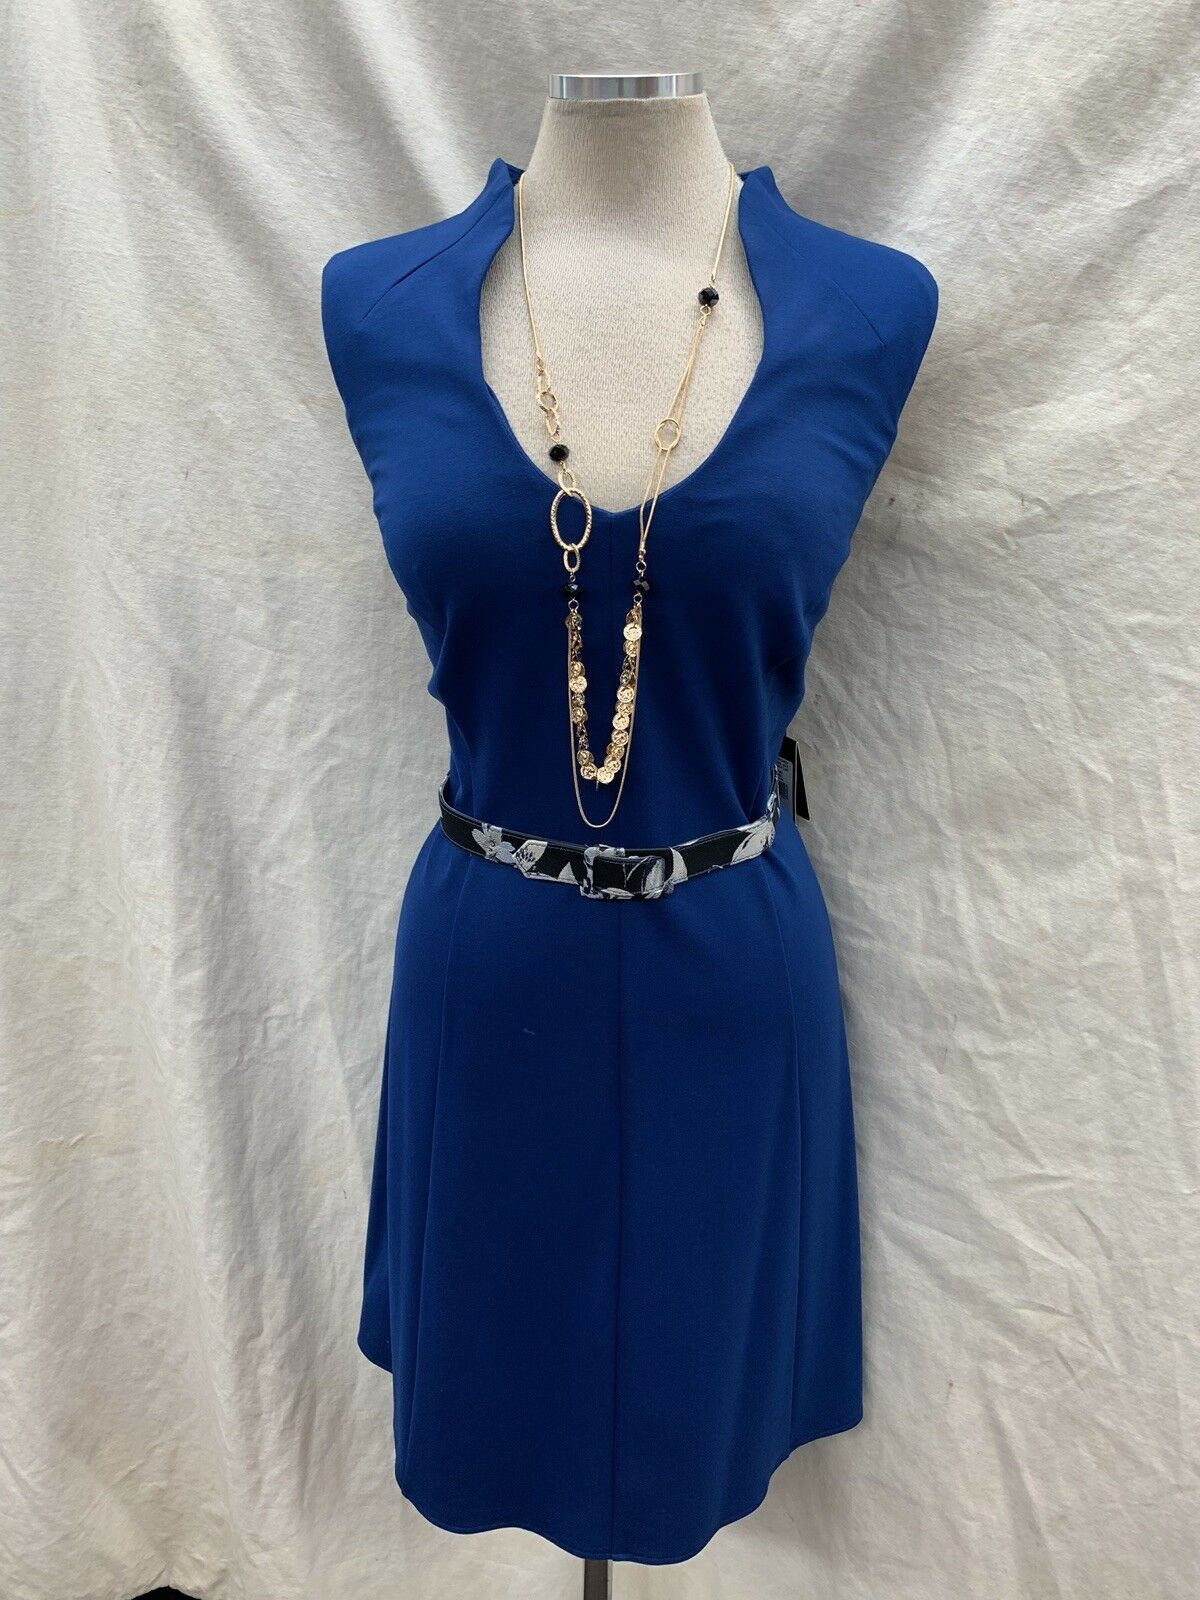 ADRIANNA PAPELL FIT&FLARE DRESS blueE SIZE 16W NEW WITH TAG RETAIL LENGTH40